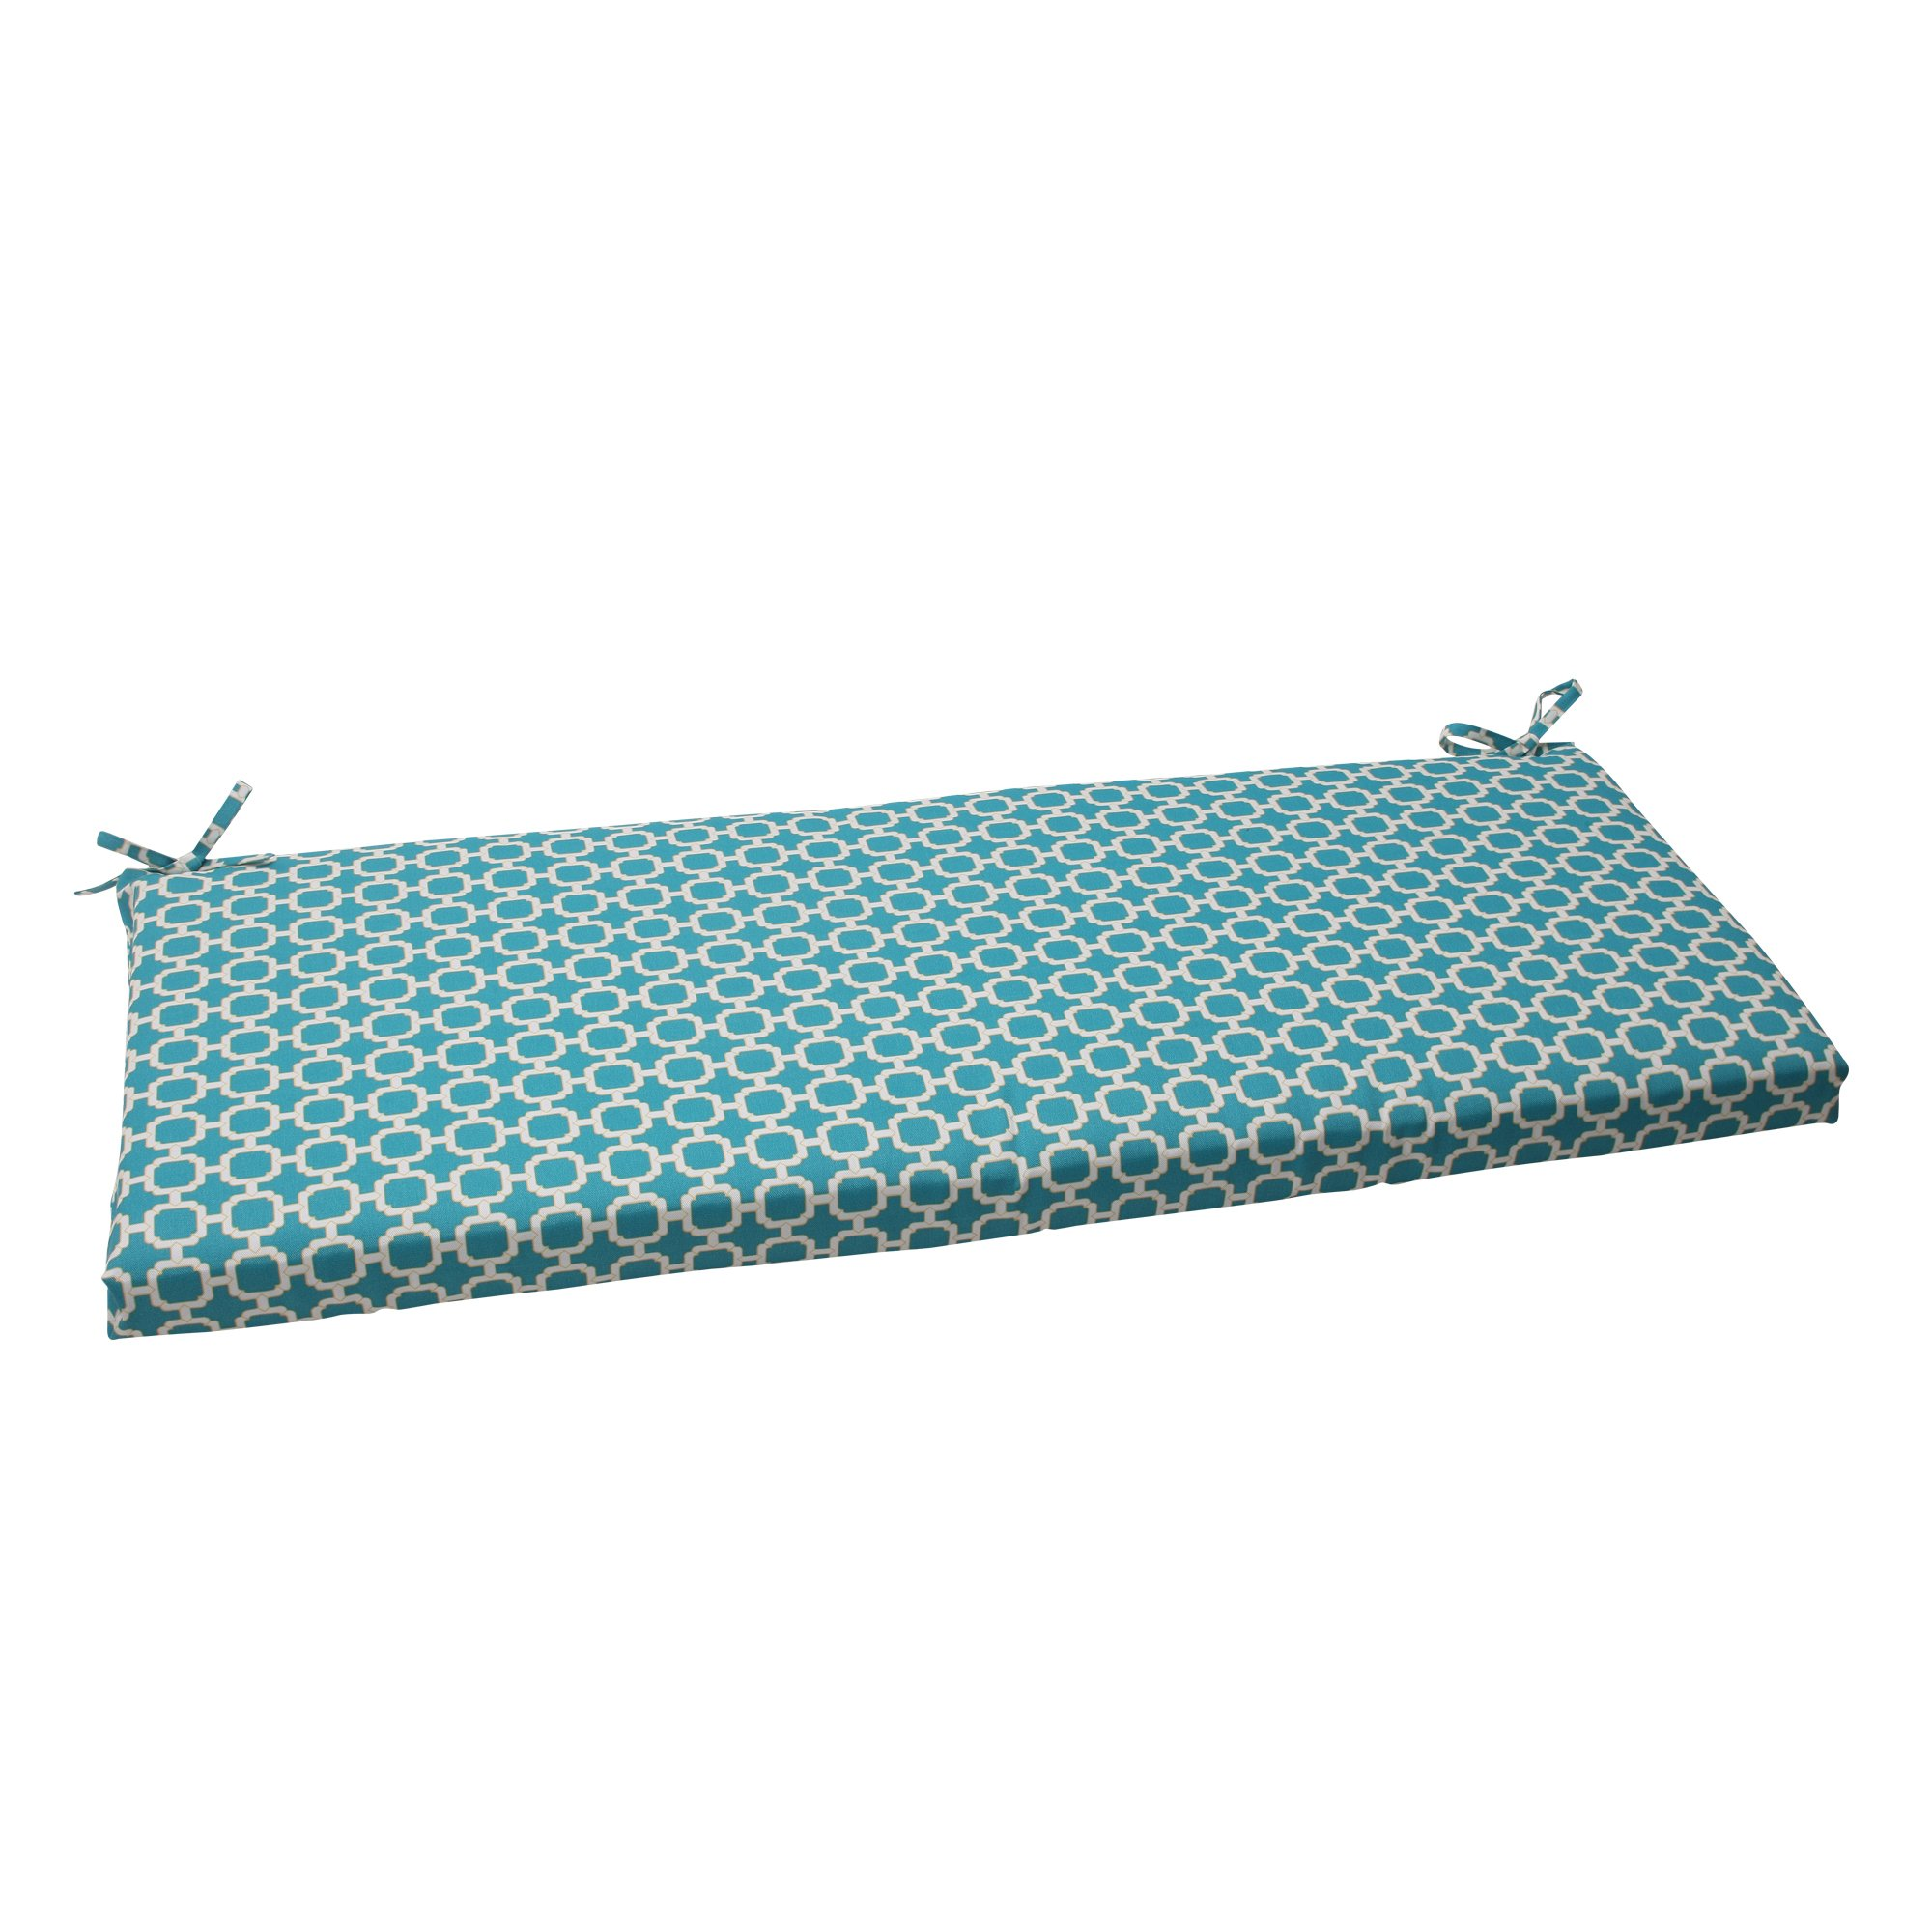 Pillow Perfect Outdoor Hockley Bench Cushion, Teal